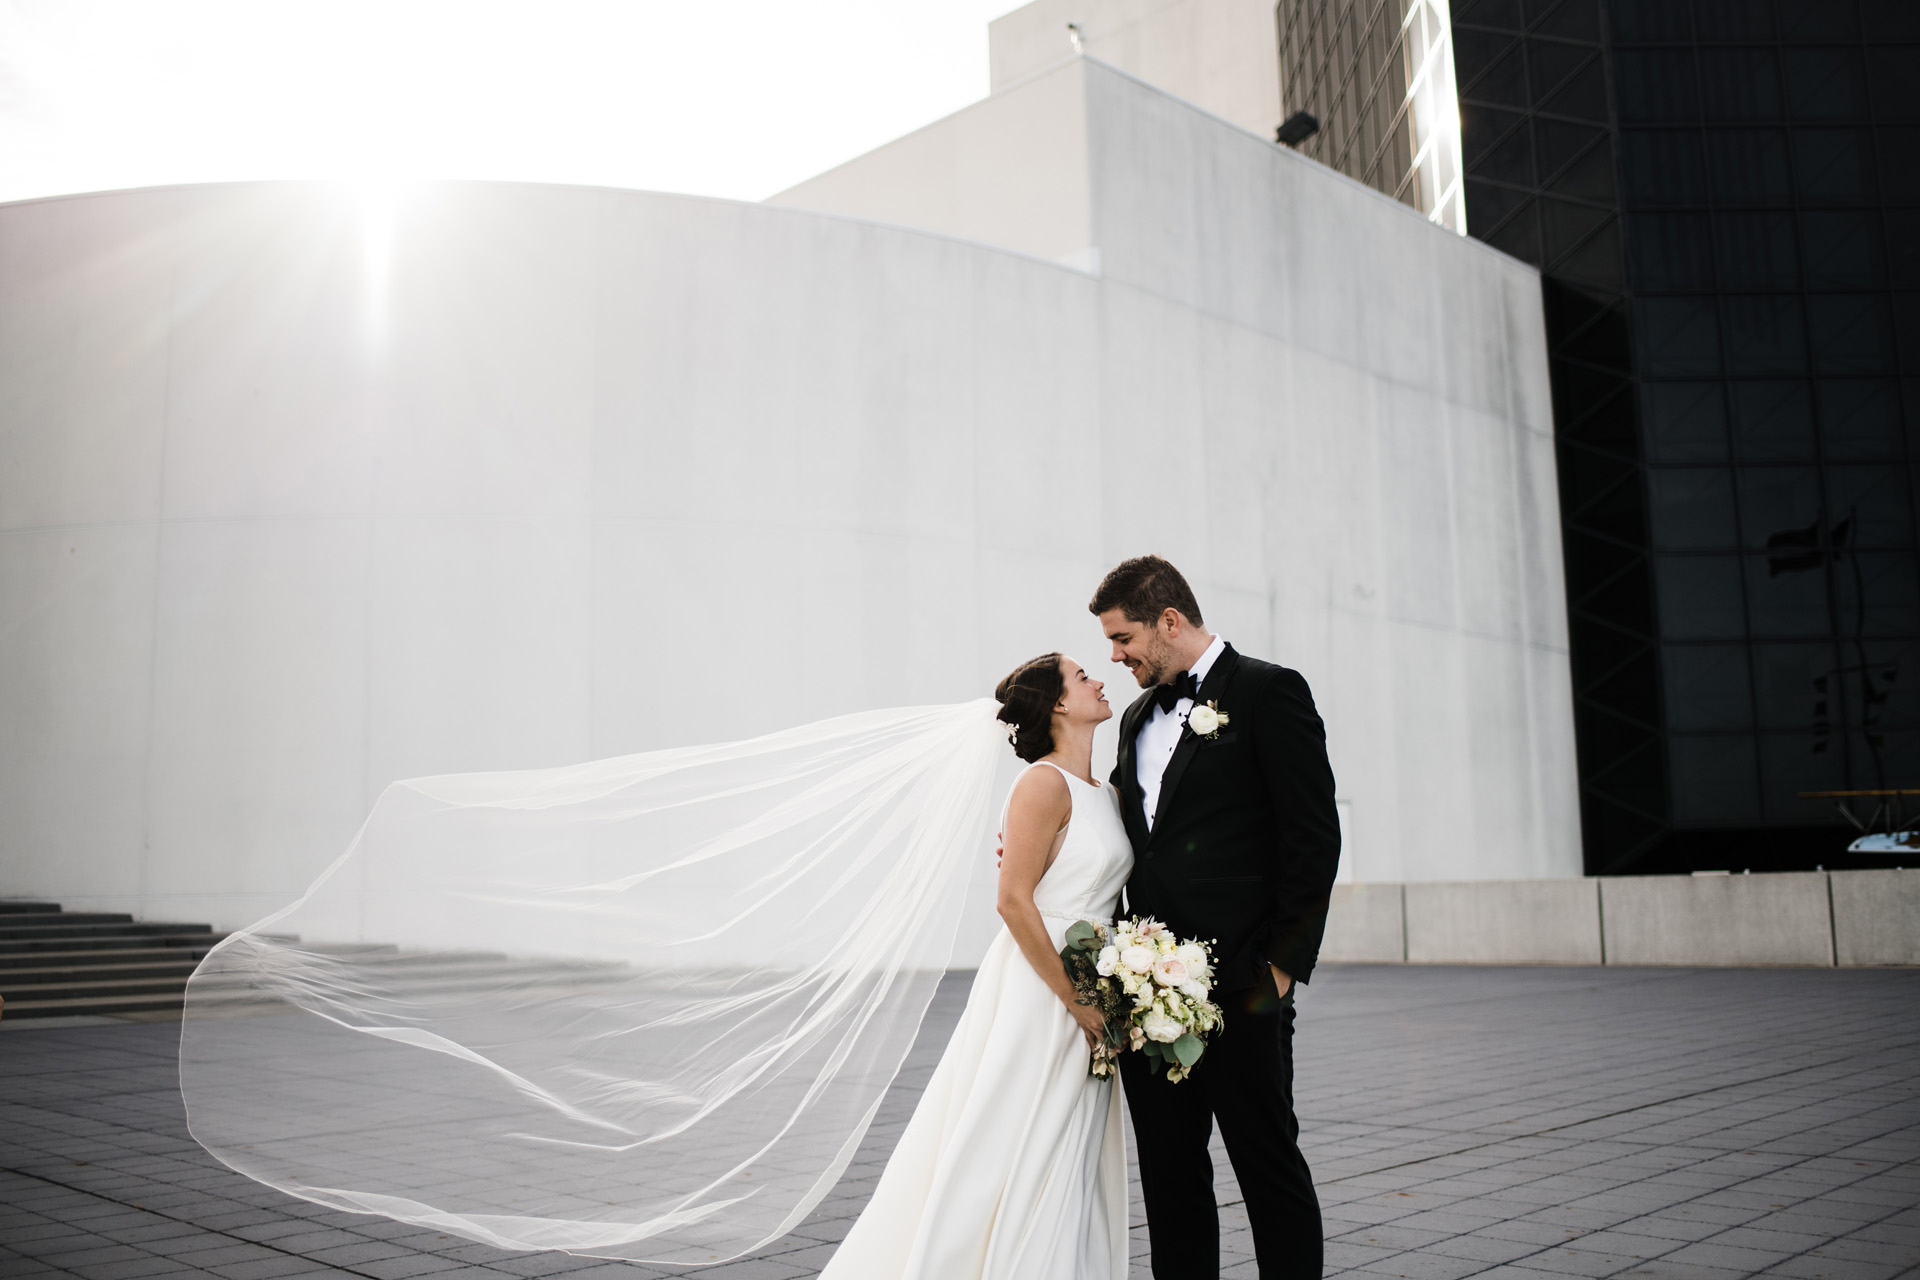 jfk-museum-wedding-photographer-31